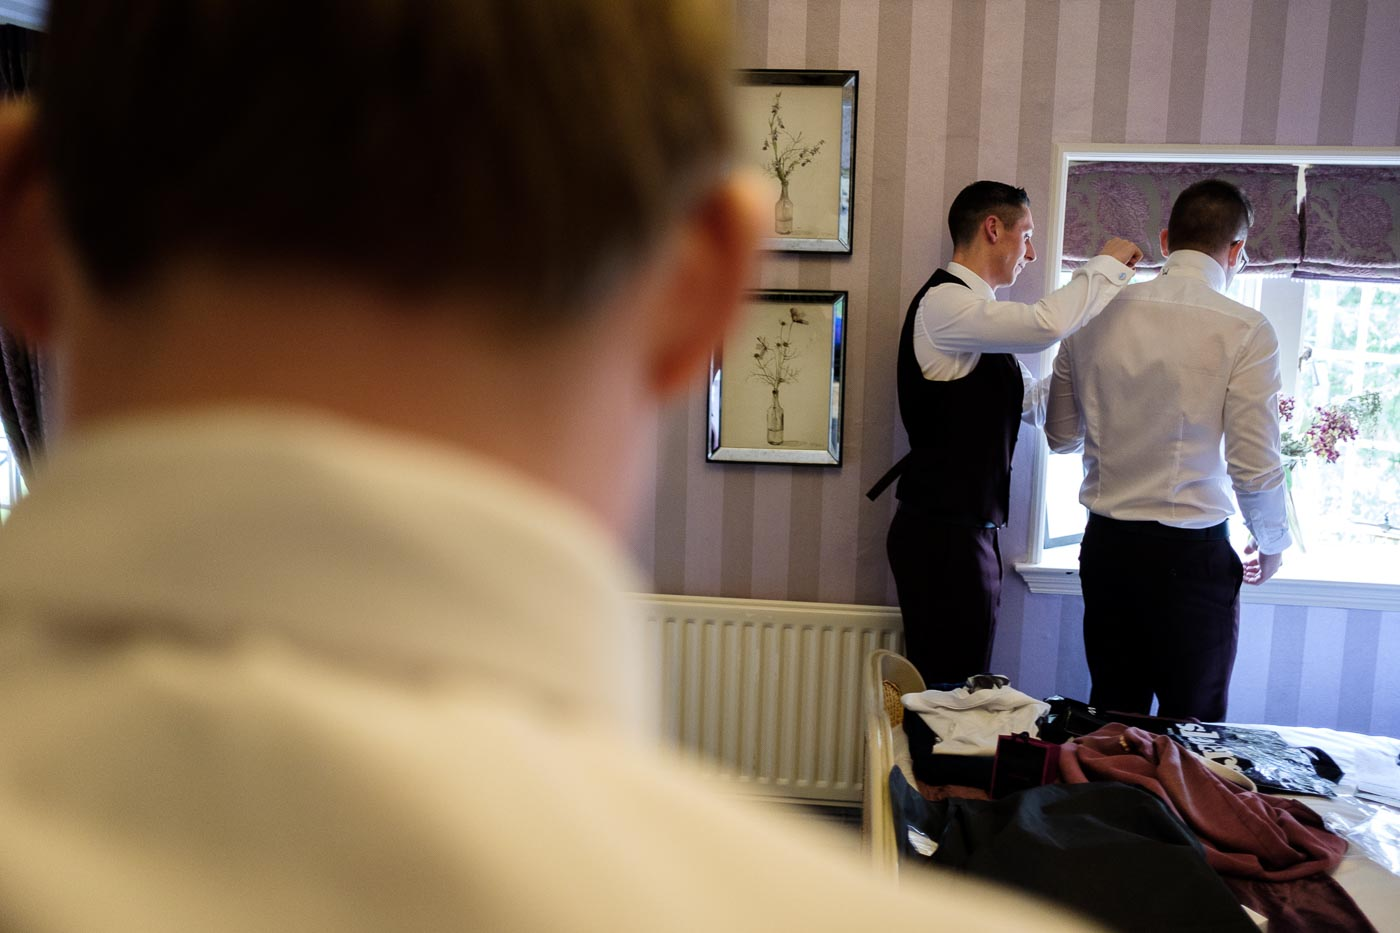 groomsman helping the groom get ready